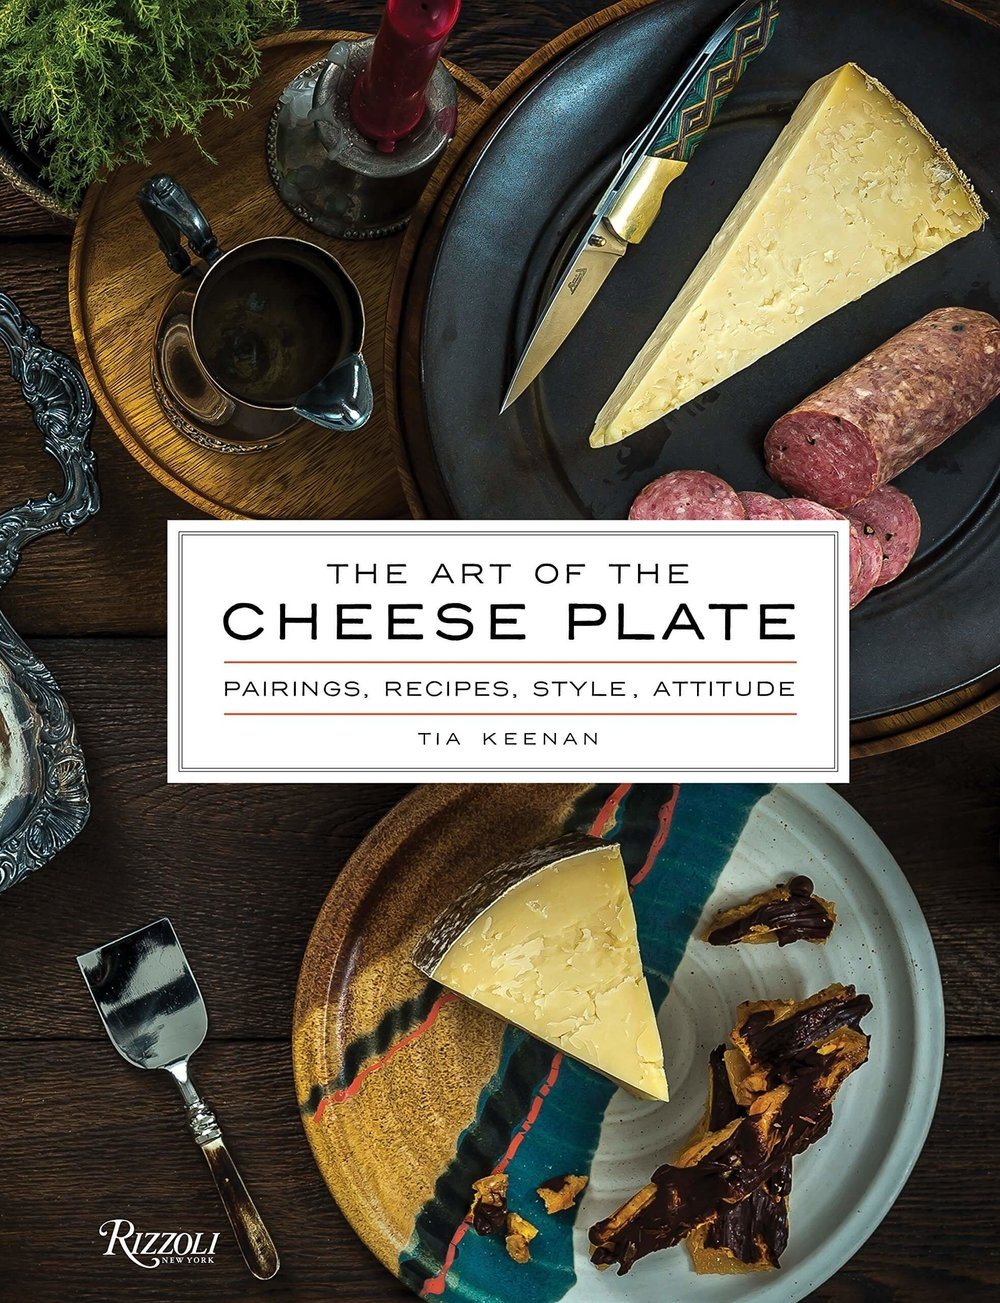 The Art of the Cheese Plate Pairings Recipes Style Attitude by Tia Keenan